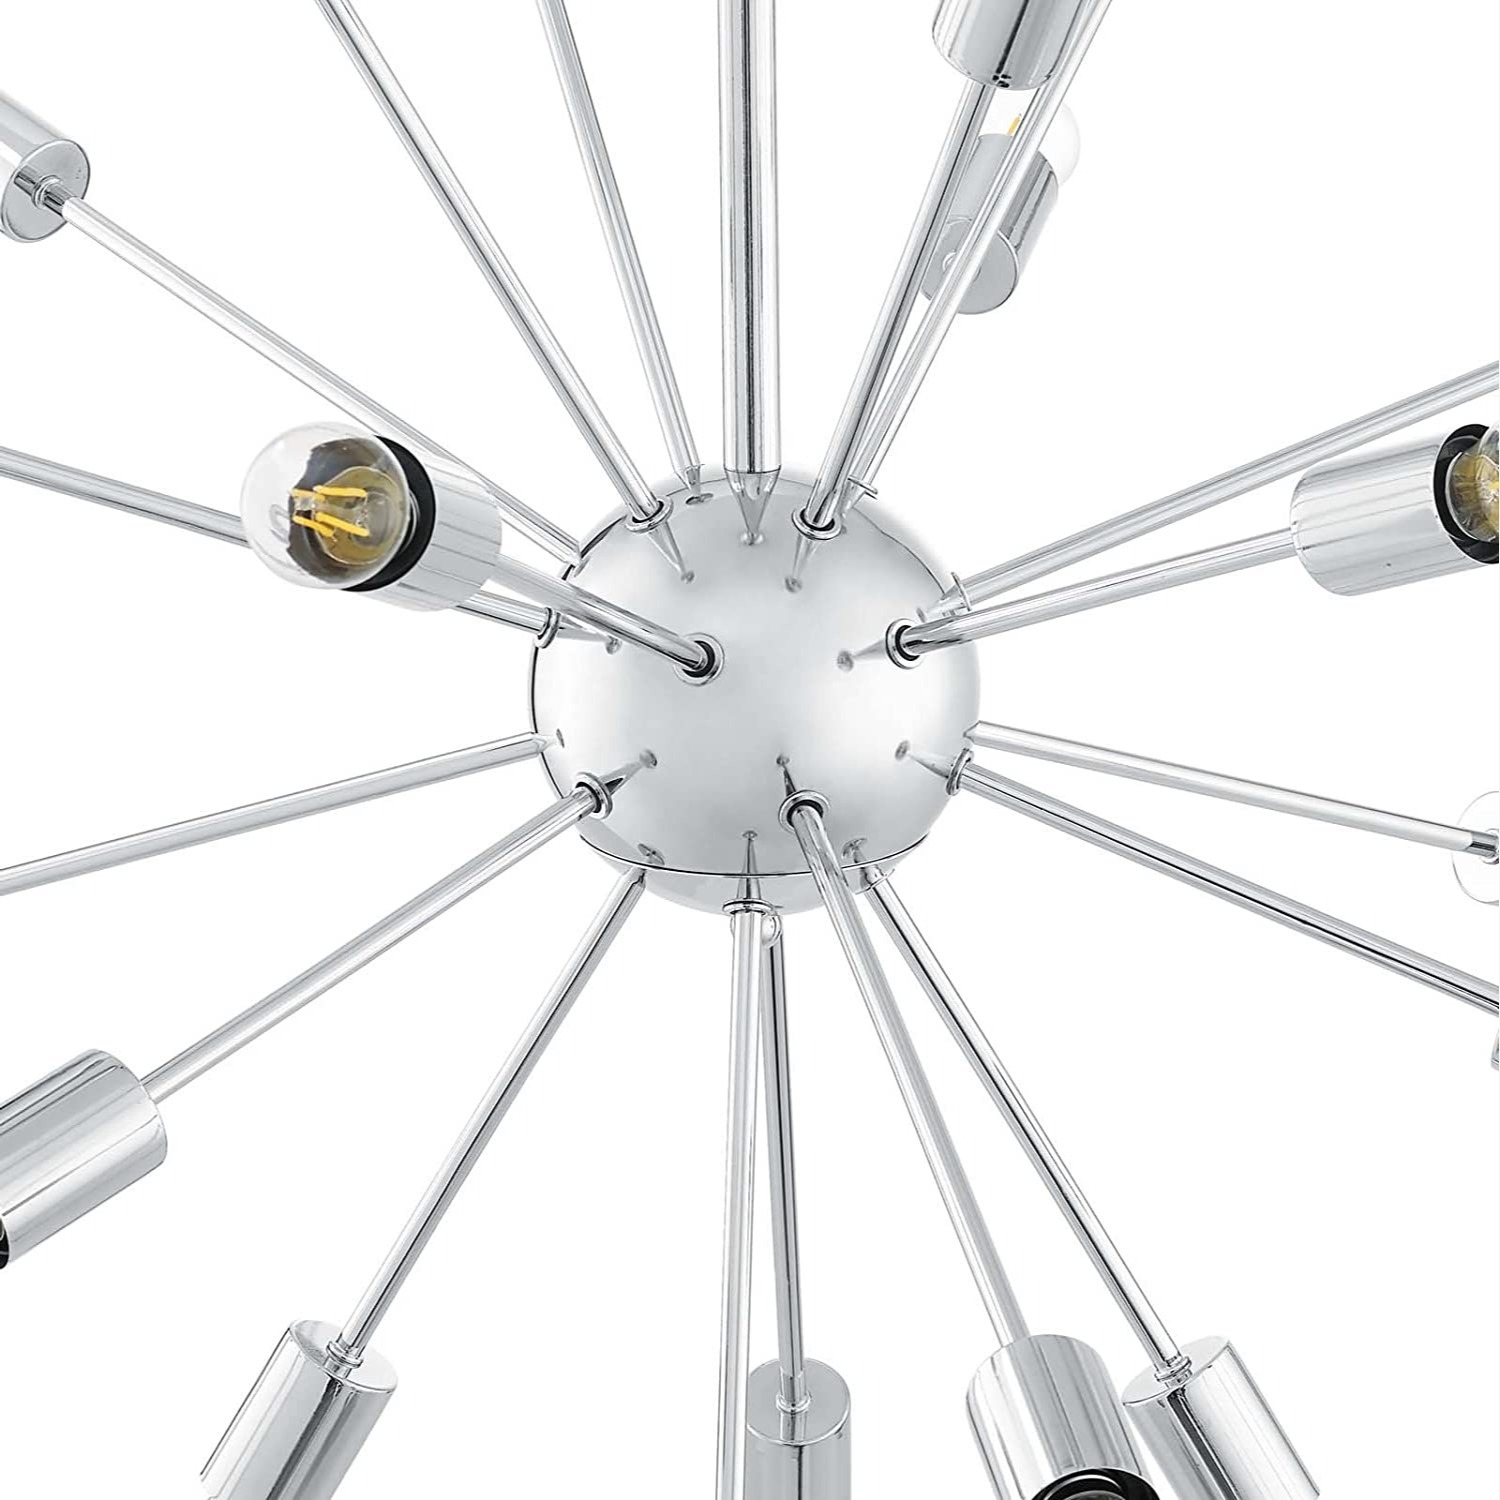 Modern Style Chandelier In Chrome-Plated Metal - image-2